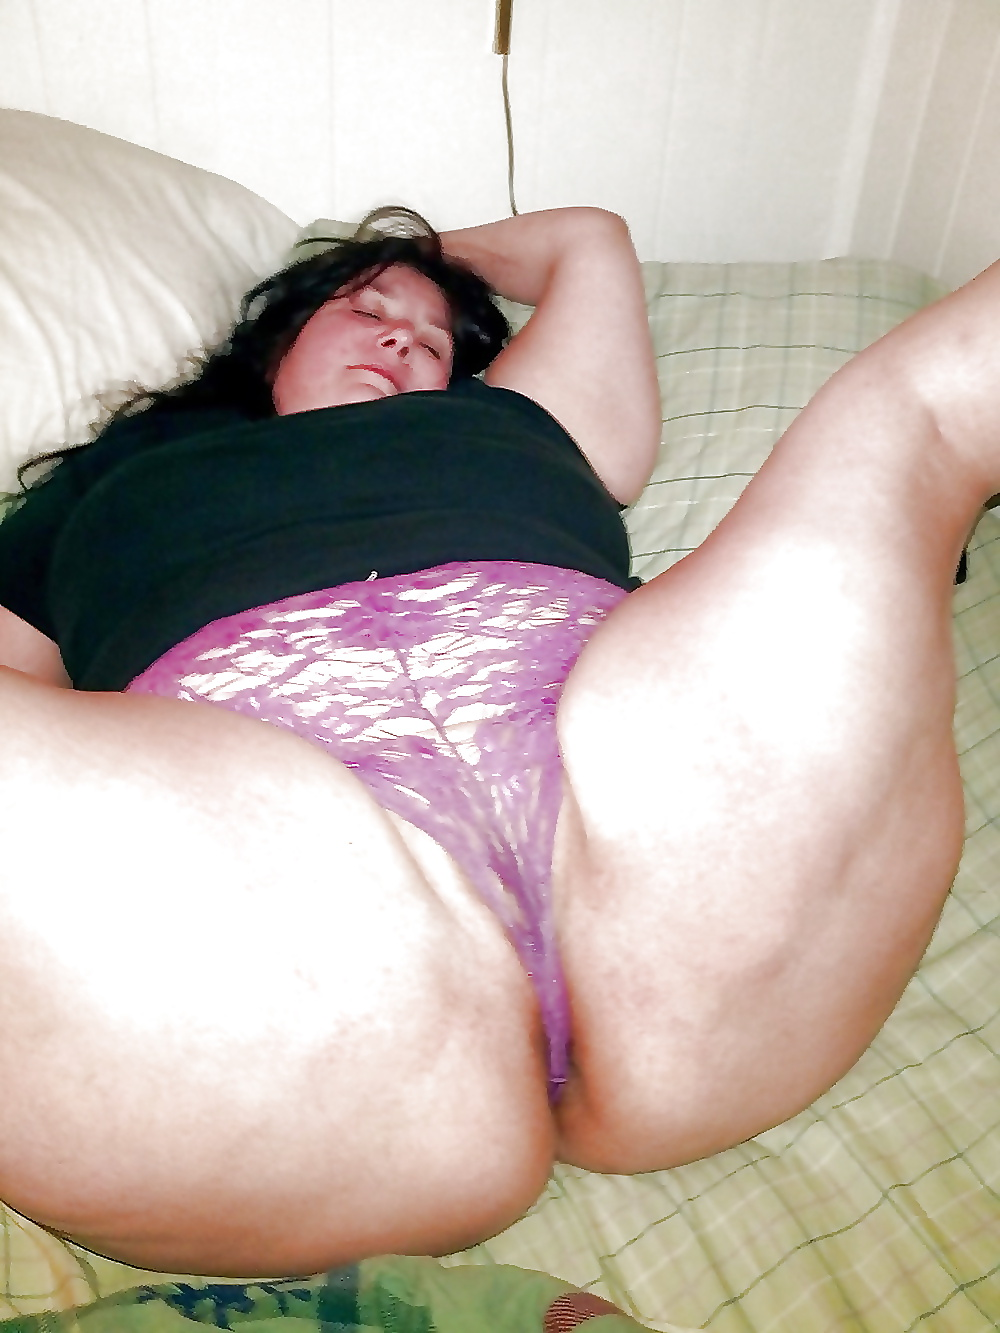 Chubby girls in nylon panties and bra images